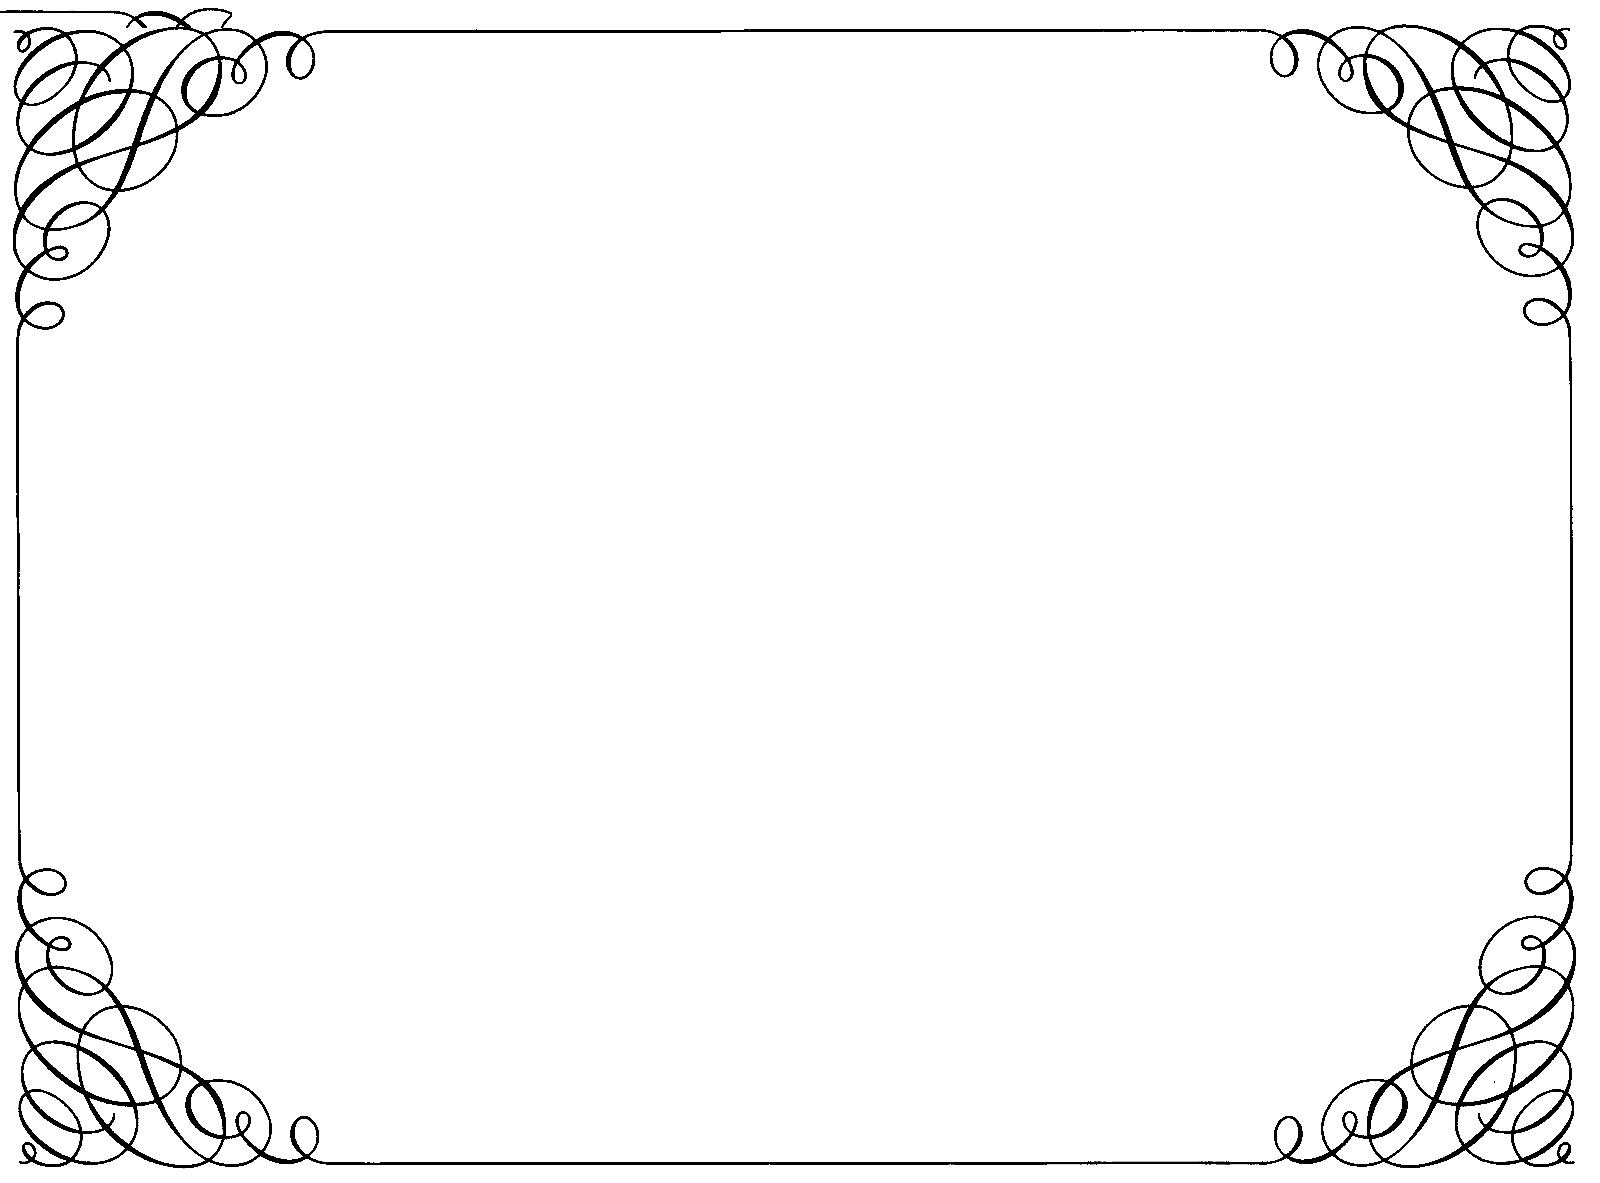 Victorian border png. Ornate curly transparent stickpng